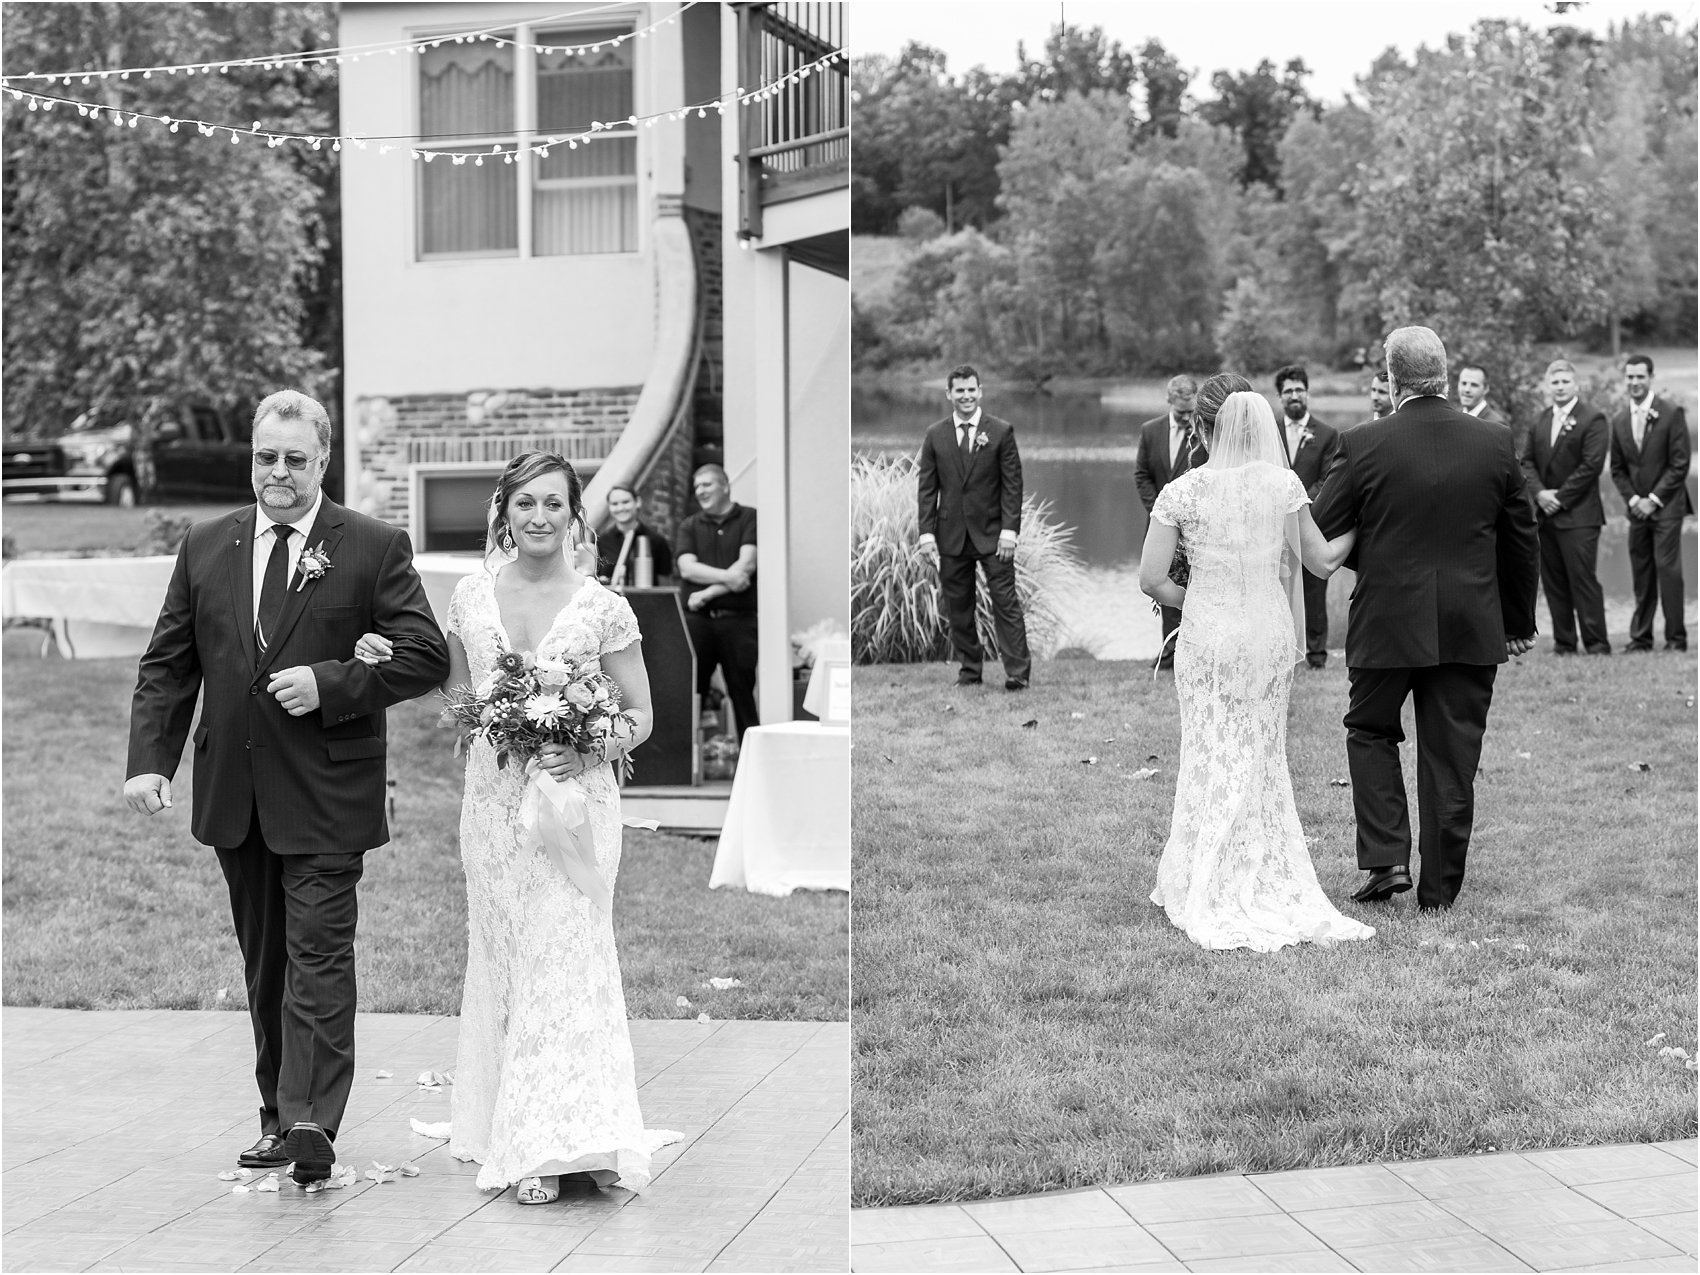 romantic-intimate-backyard-wedding-photos-at-private-estate-in-ann-arbor-mi-by-courtney-carolyn-photography_0090.jpg